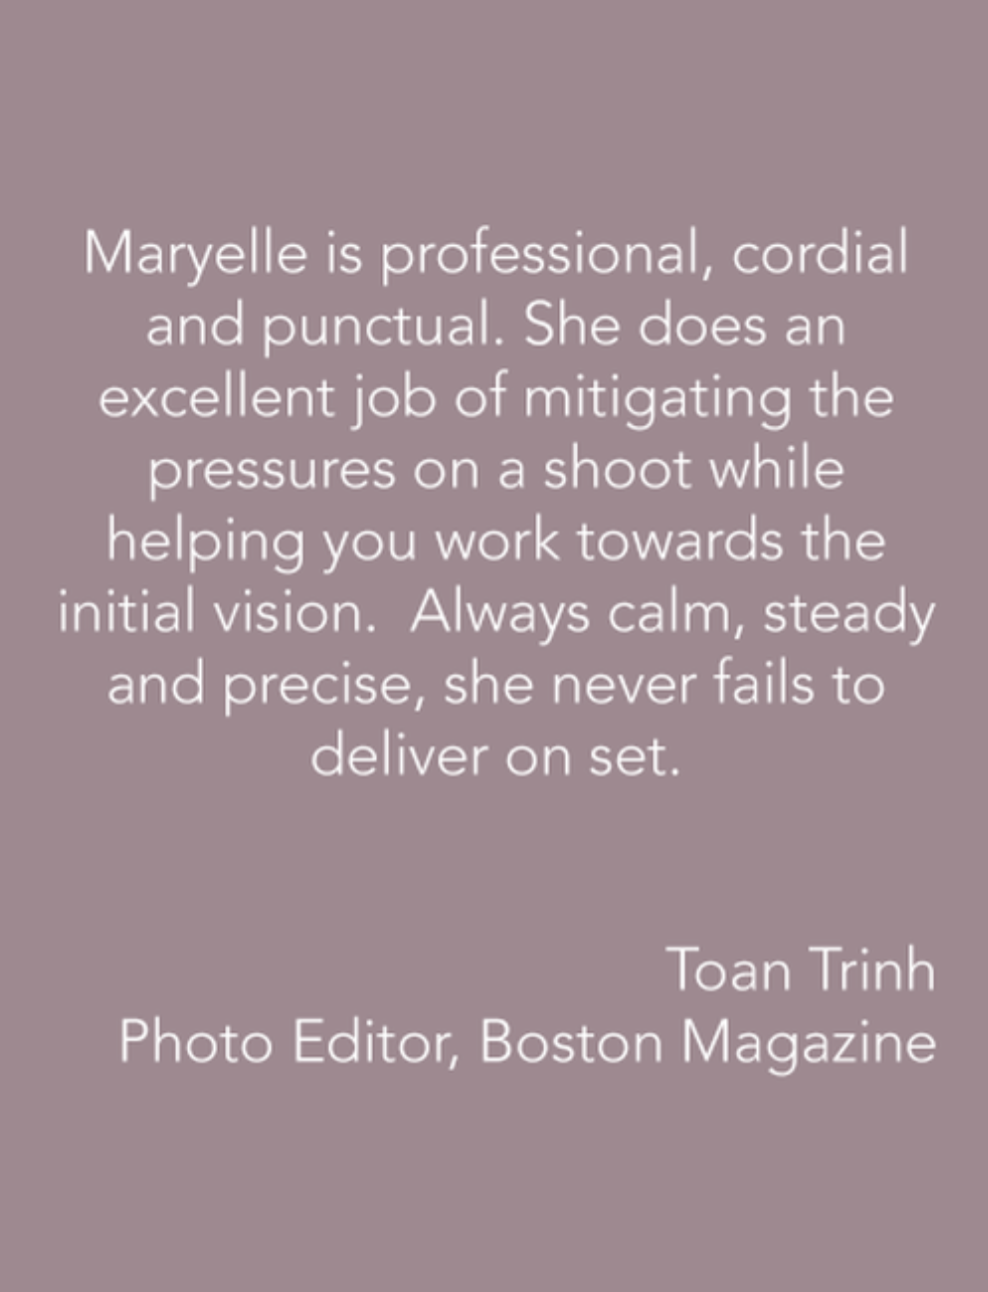 Testimonial from Toan Trinh, Photo Editor, Boston Magazine